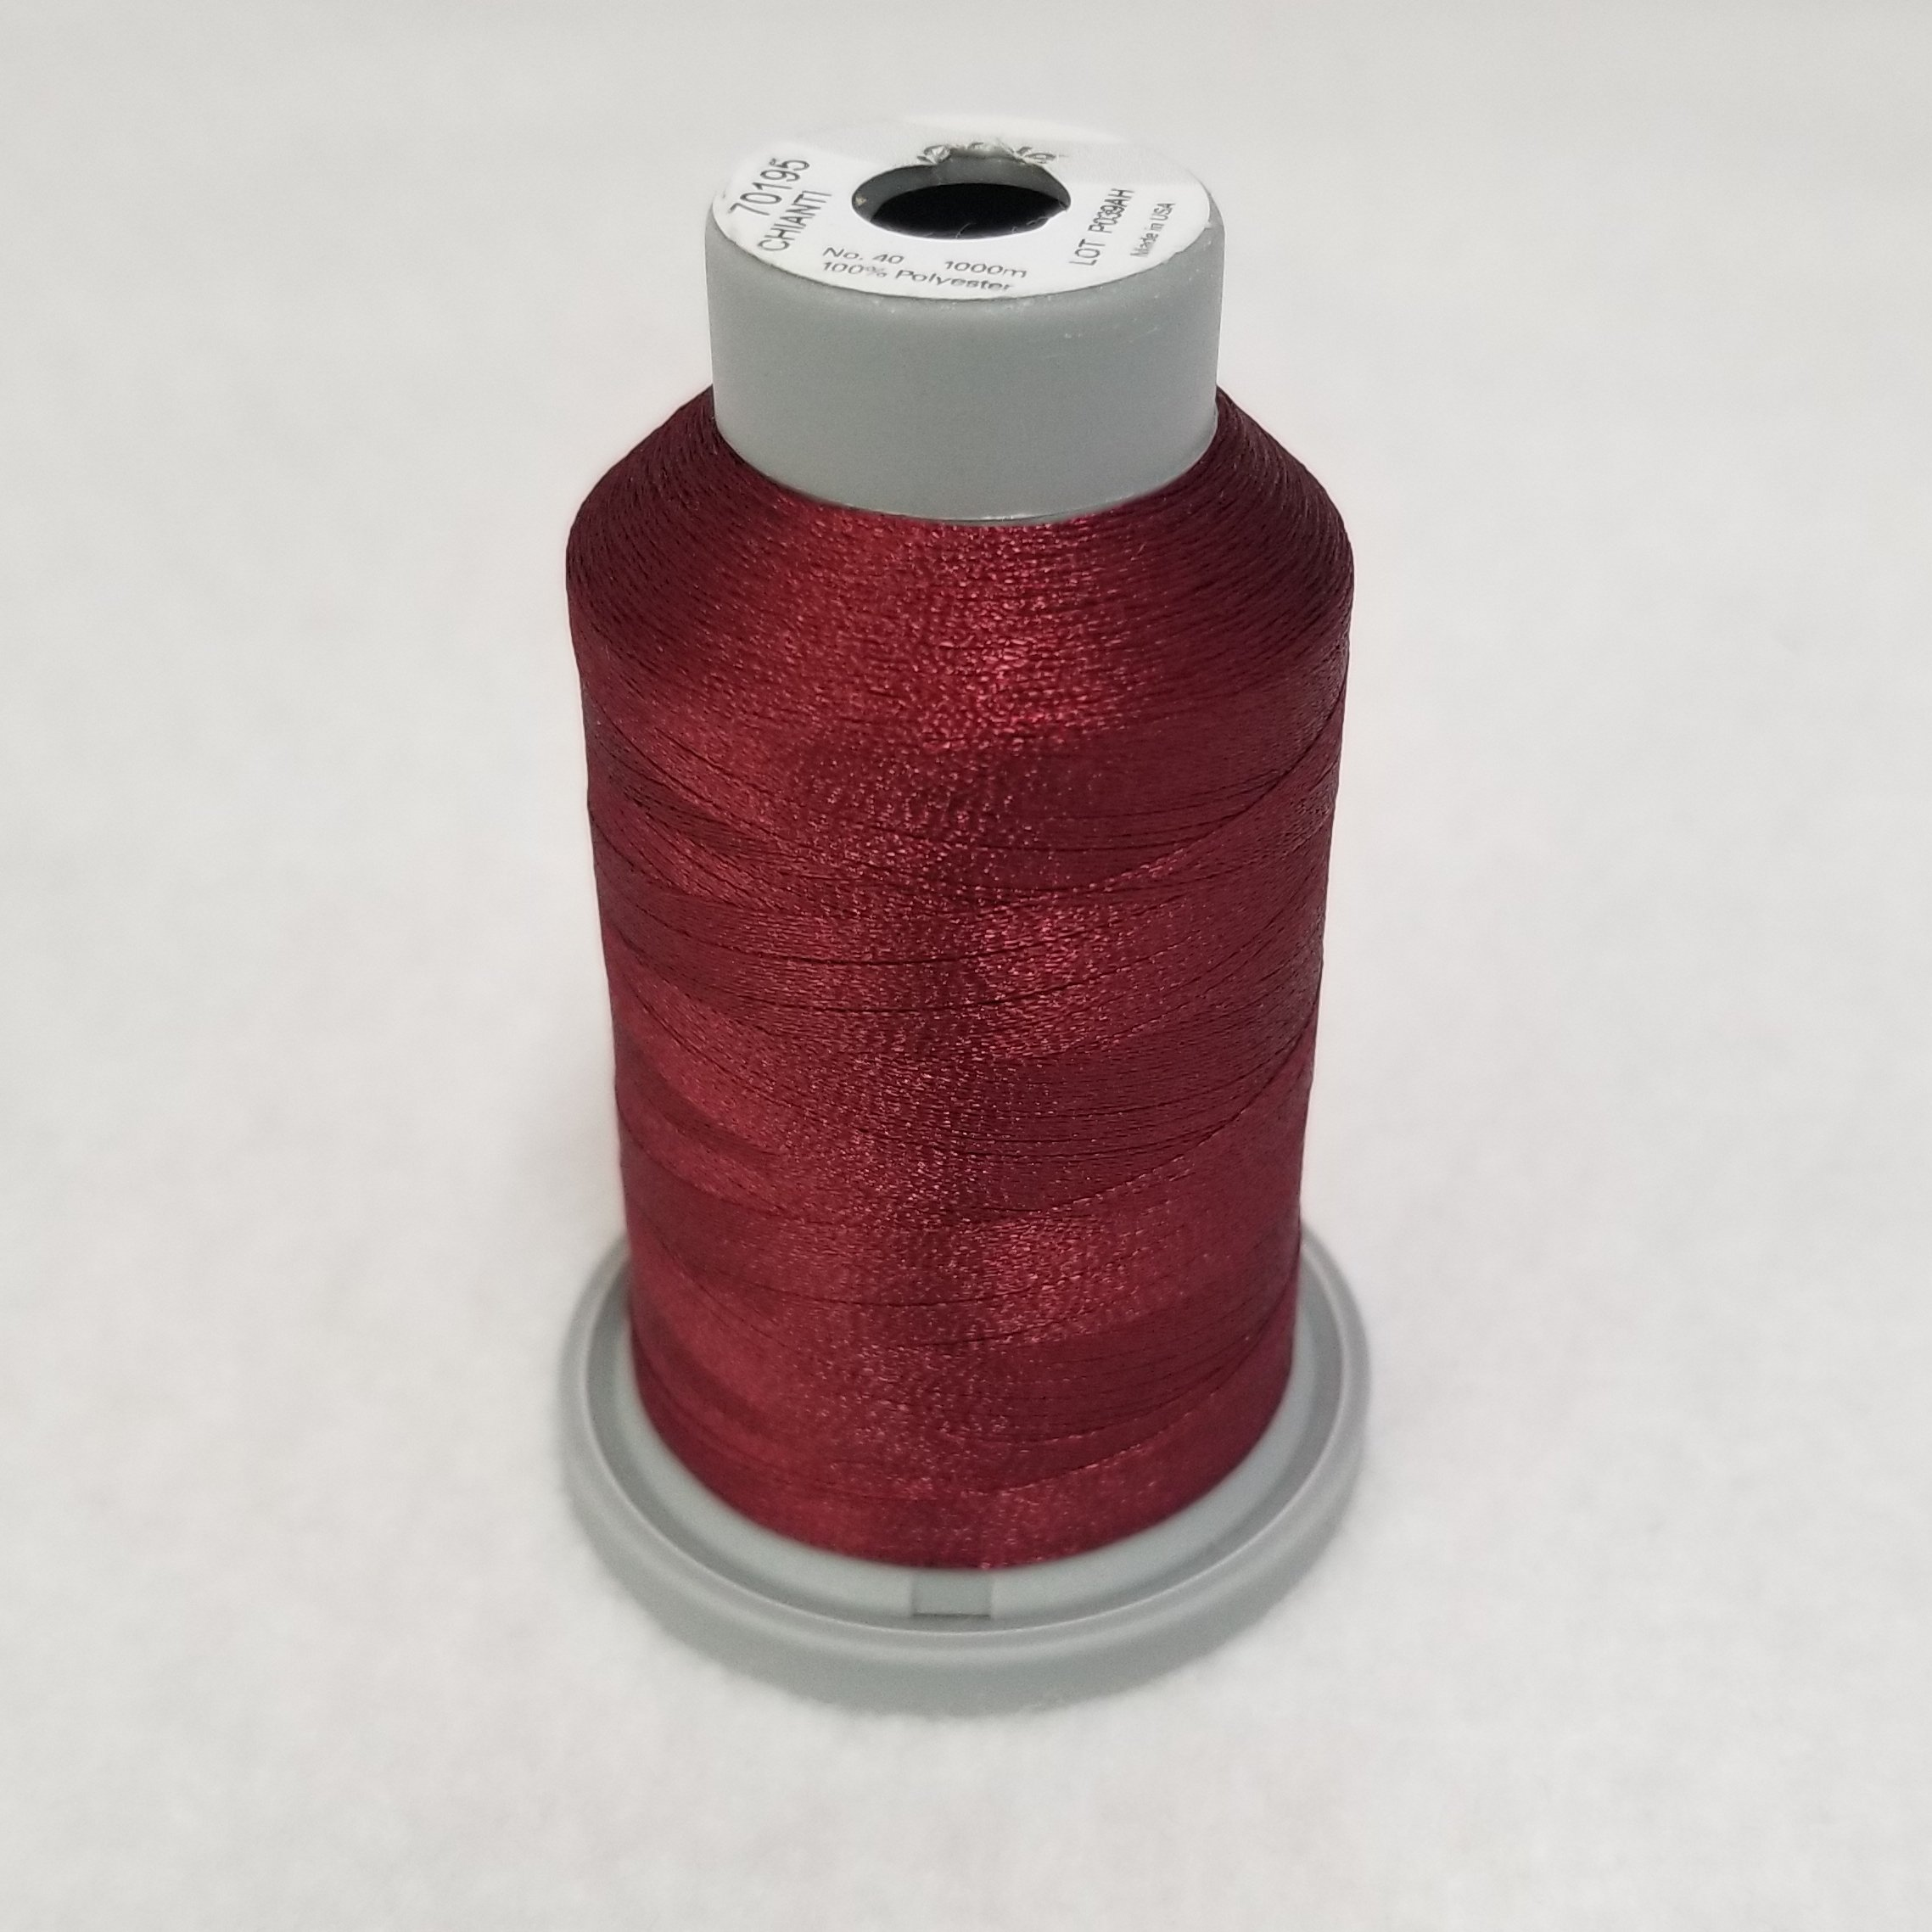 Chianti Red Glide Thread Spool